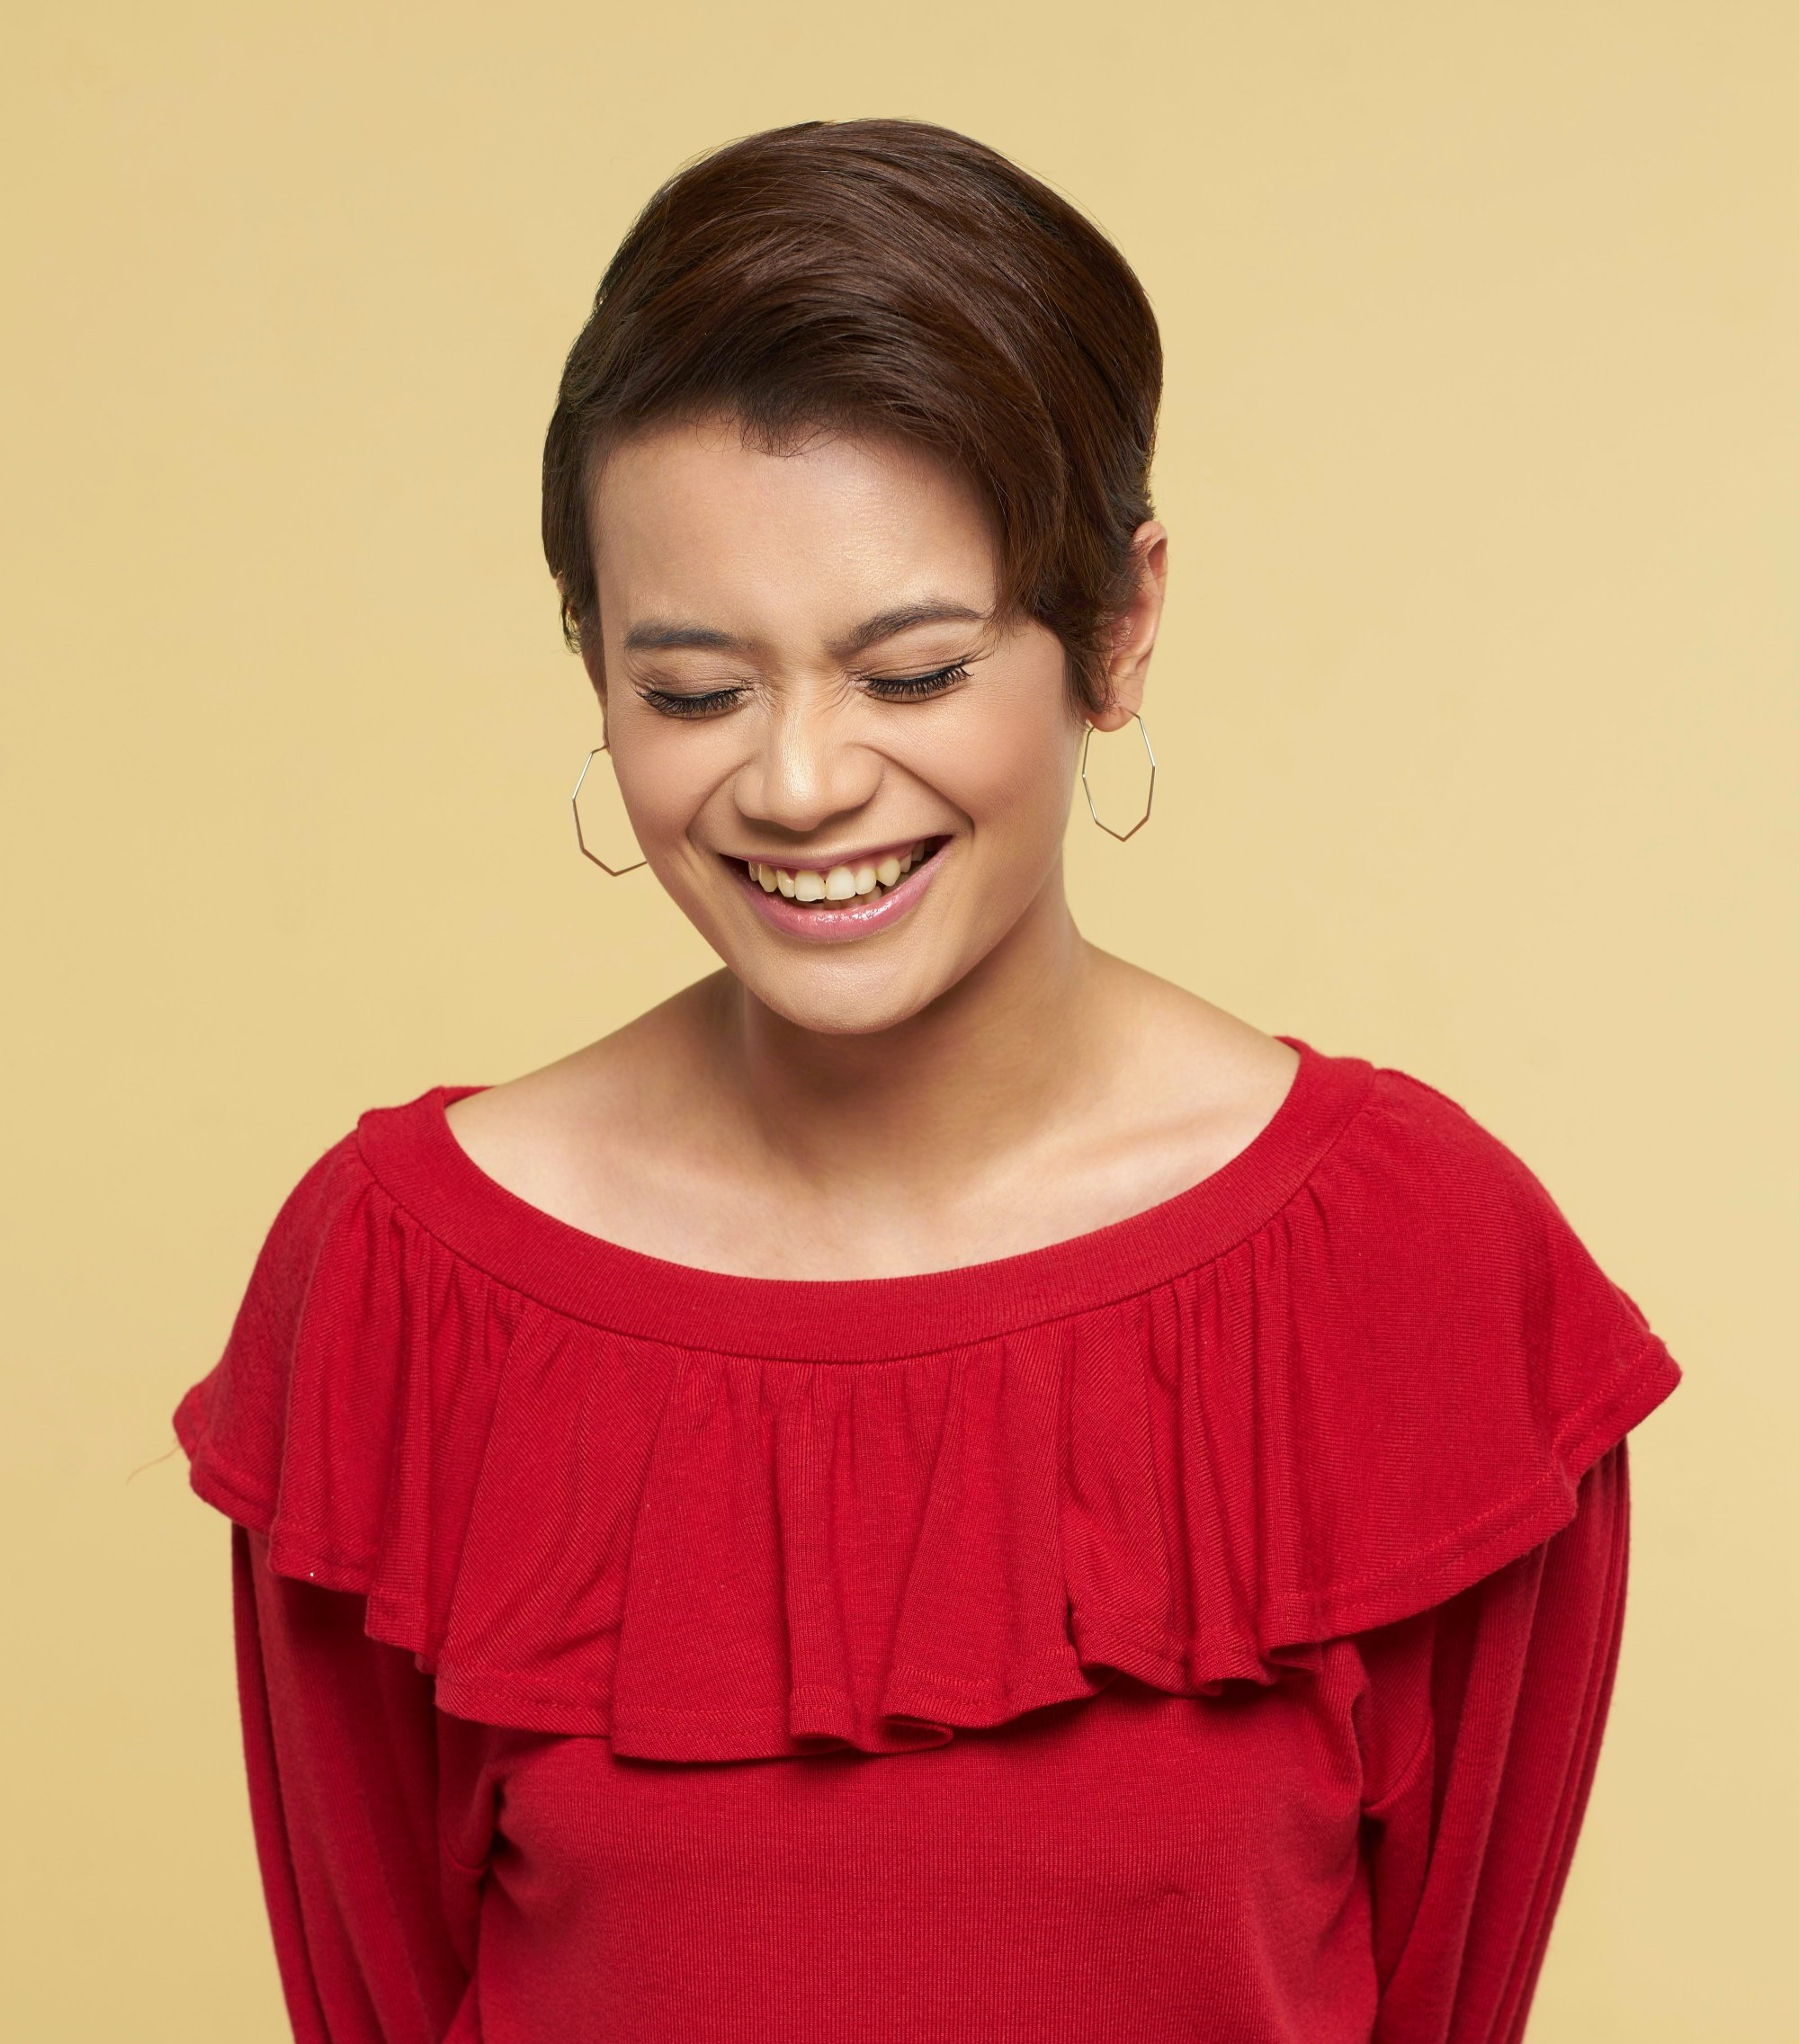 Short hairstyles for Filipinas: Closeup shot of an Asian woman with sleek pixie cut wearing a red blouse